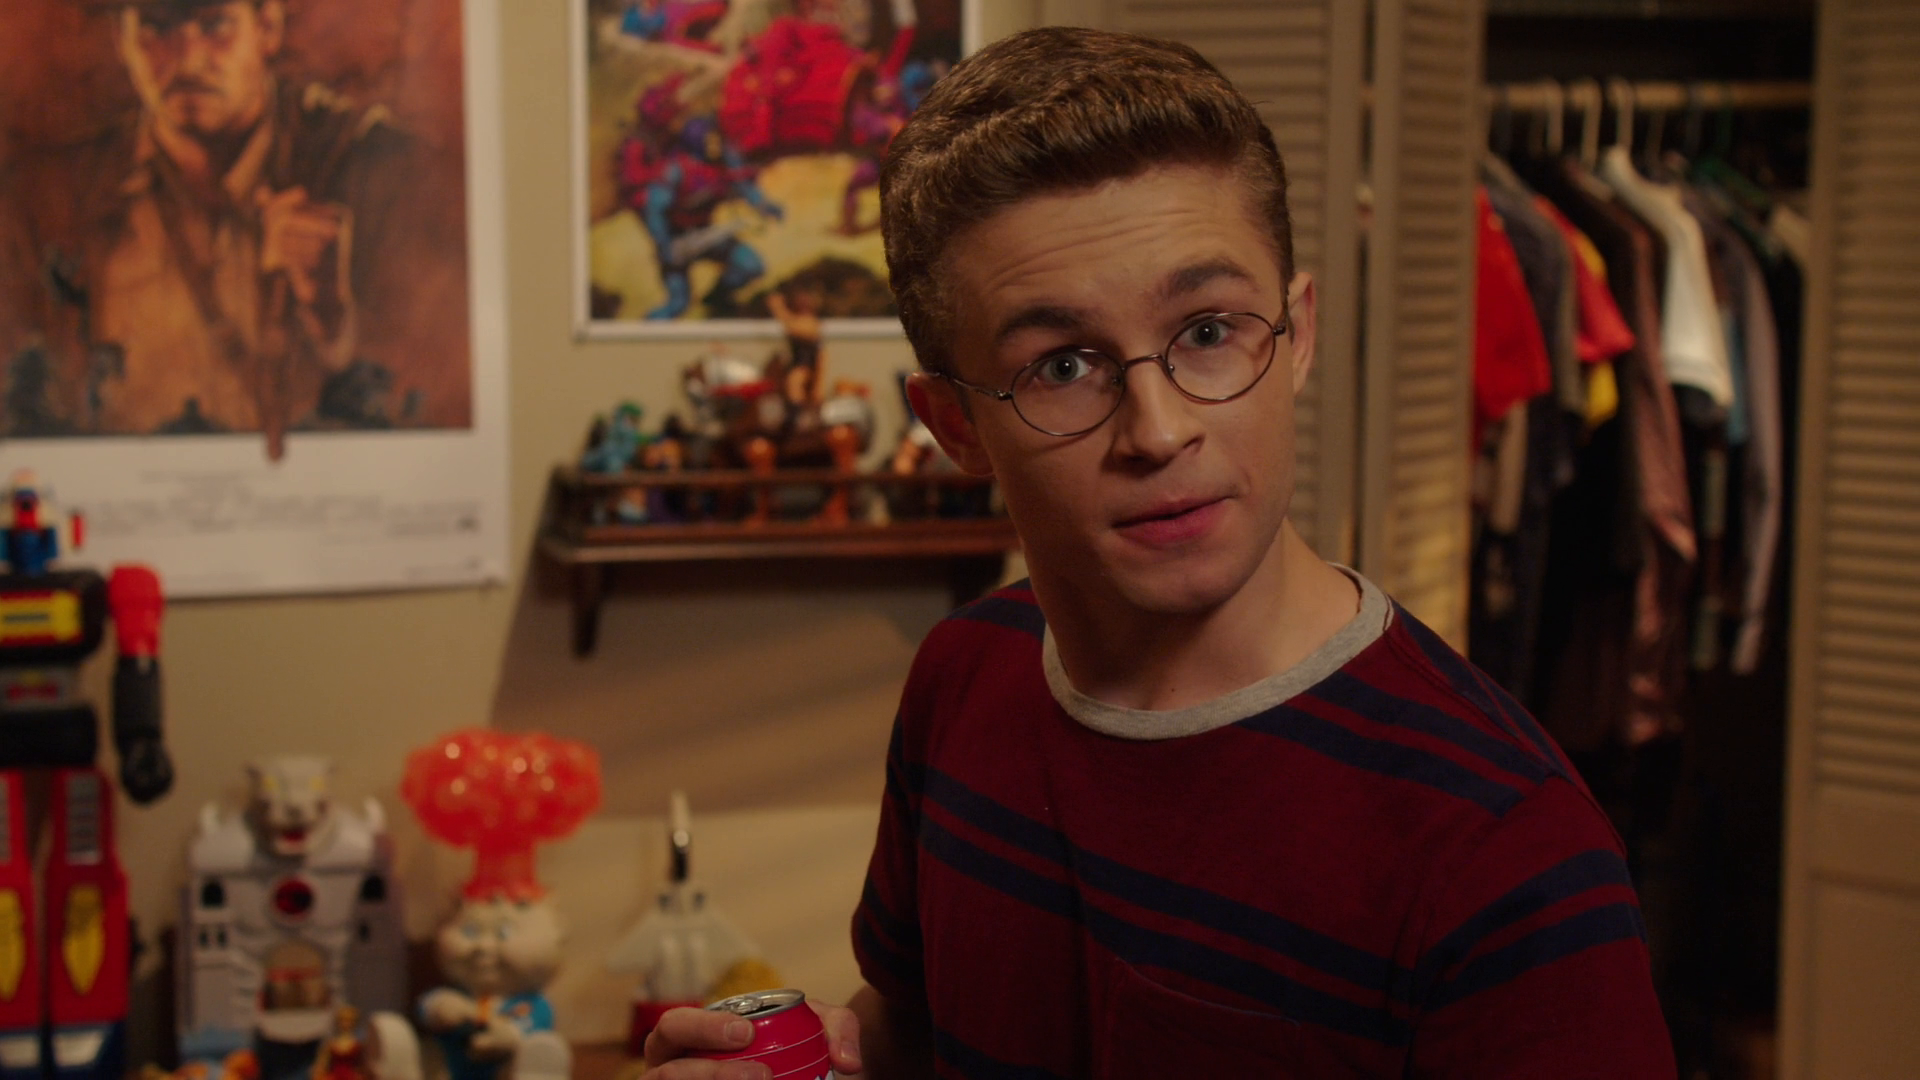 The Goldbergs 2013 S06E21 I Lost on Jeopardy 1080p AMZN WEB-DL DDP5 1 H 264-NTb